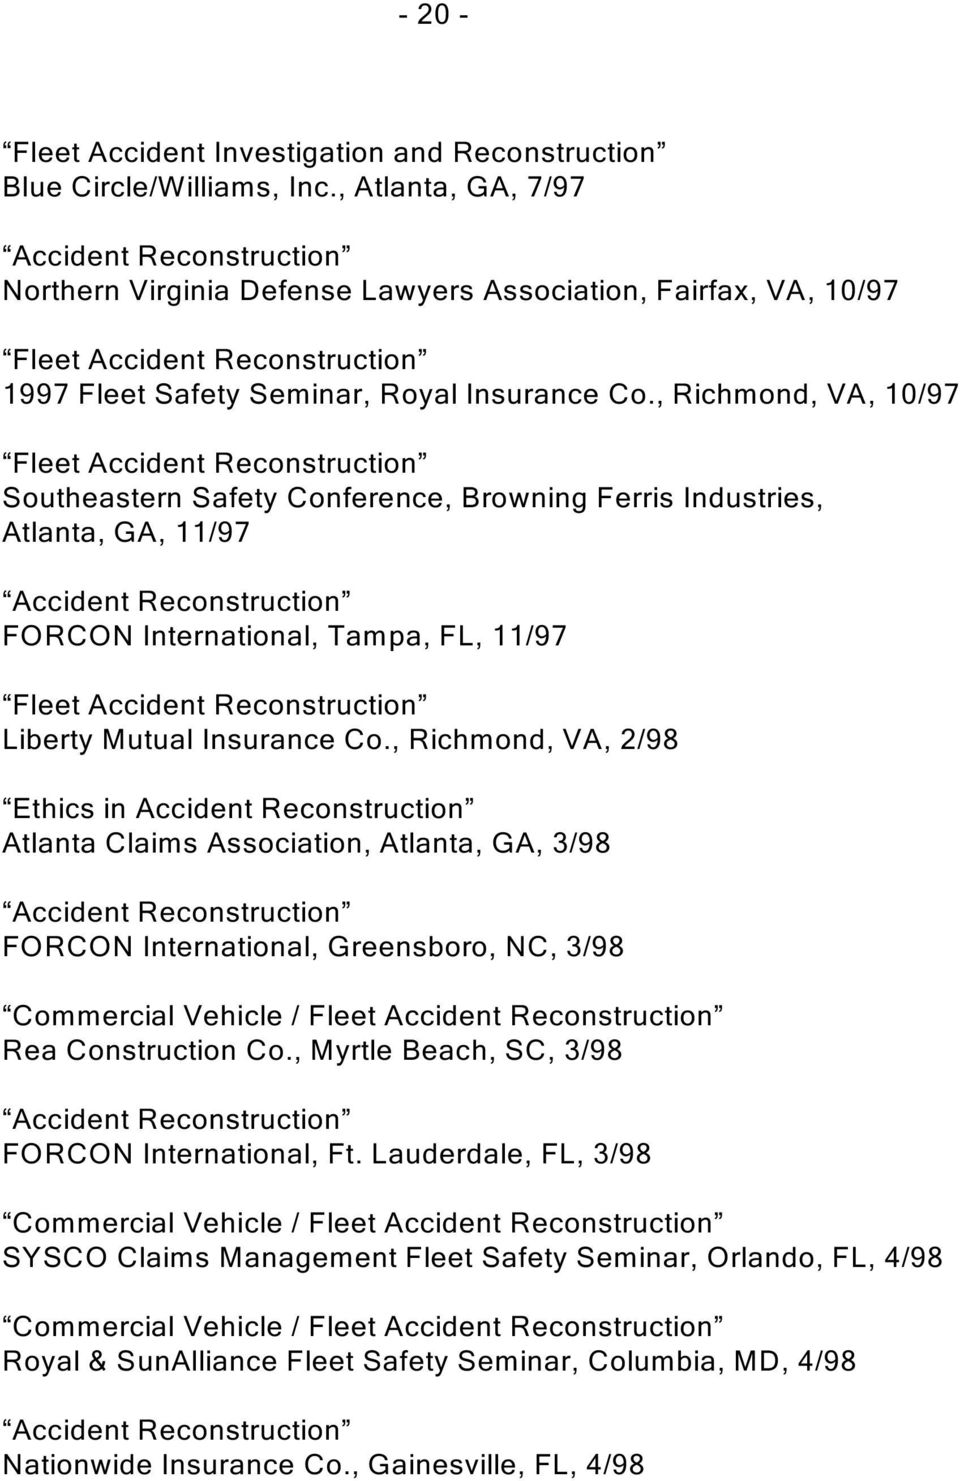 , Richmond, VA, 10/97 Fleet Accident Reconstruction Southeastern Safety Conference, Browning Ferris Industries, Atlanta, GA, 11/97 FORCON International, Tampa, FL, 11/97 Fleet Accident Reconstruction